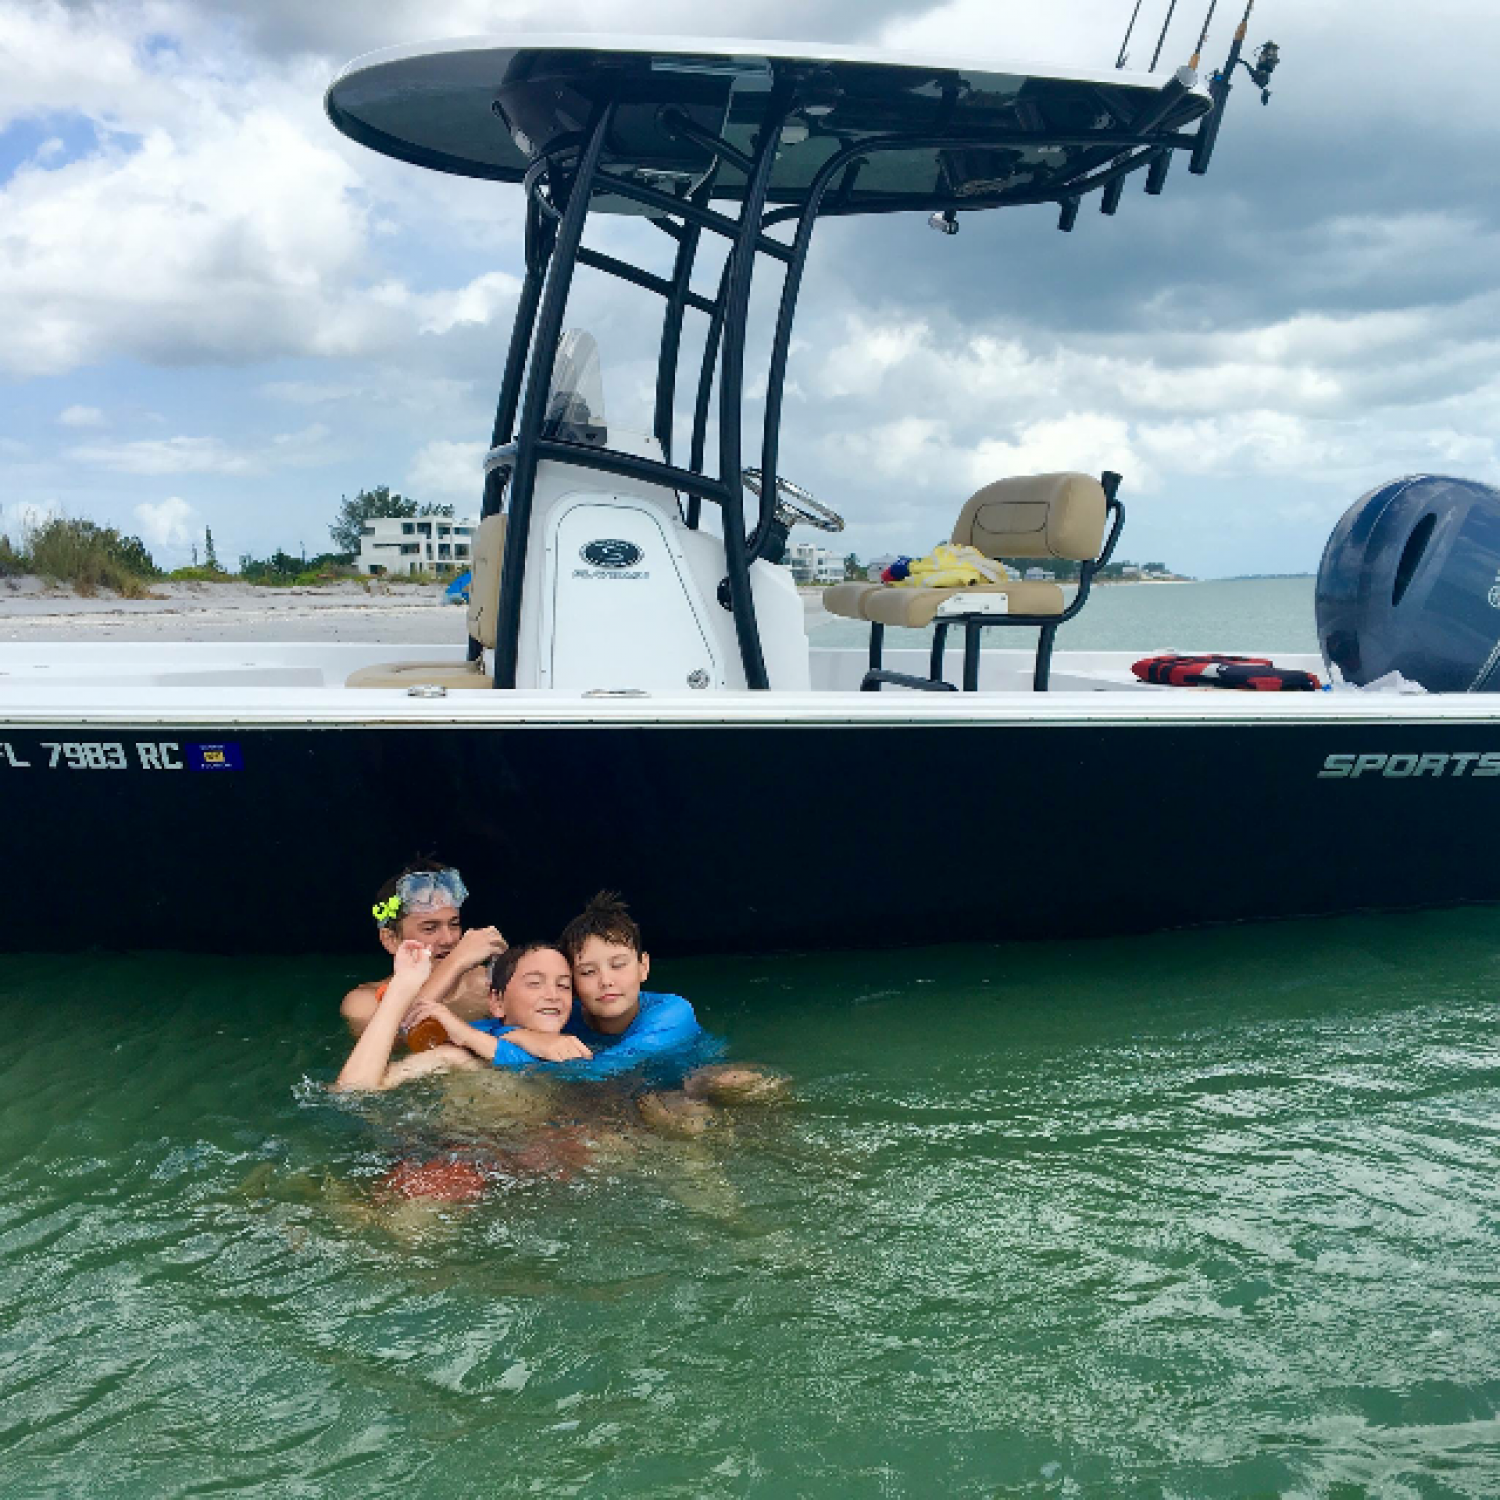 Title: Family Time - On board their Sportsman Masters 227 Bay Boat - Location: Valrico, Florida. Participating in the Photo Contest #SportsmanJanuary2017